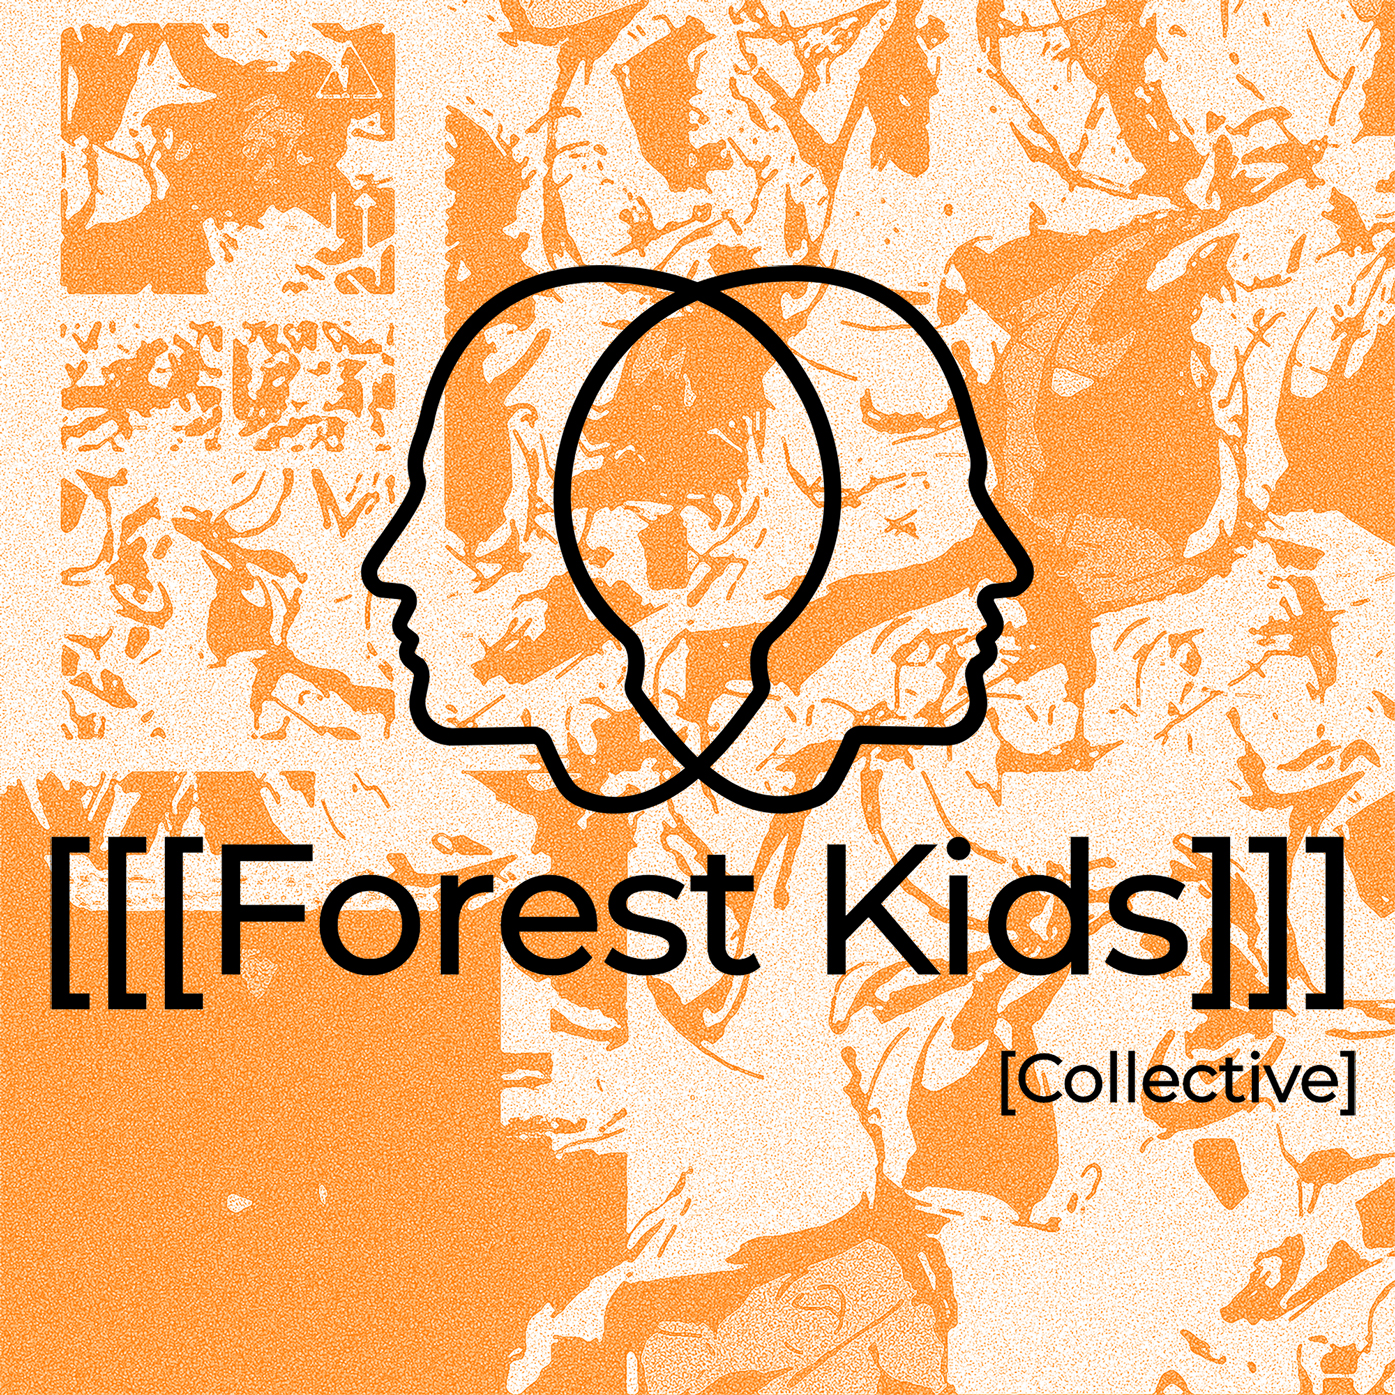 forest kids playlist alternative.jpg